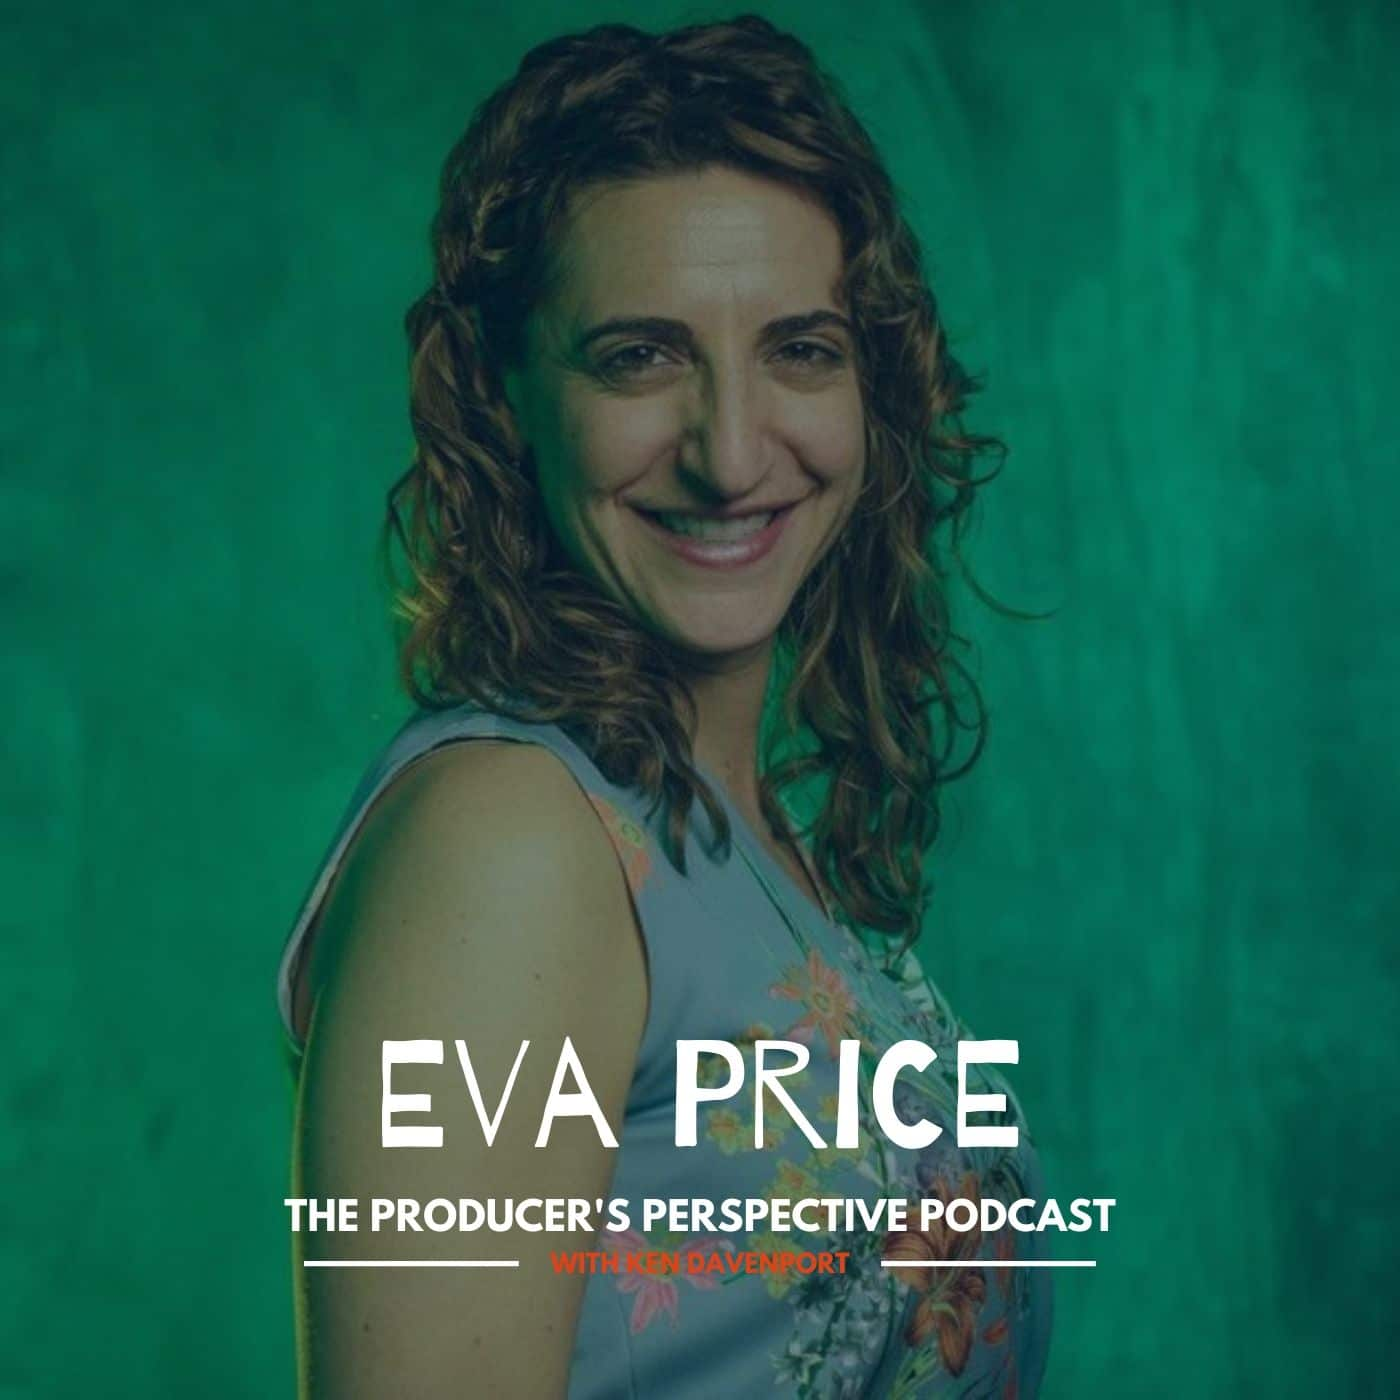 Ken Davenport's The Producer's Perspective Podcast Episode 117 - Eva Price